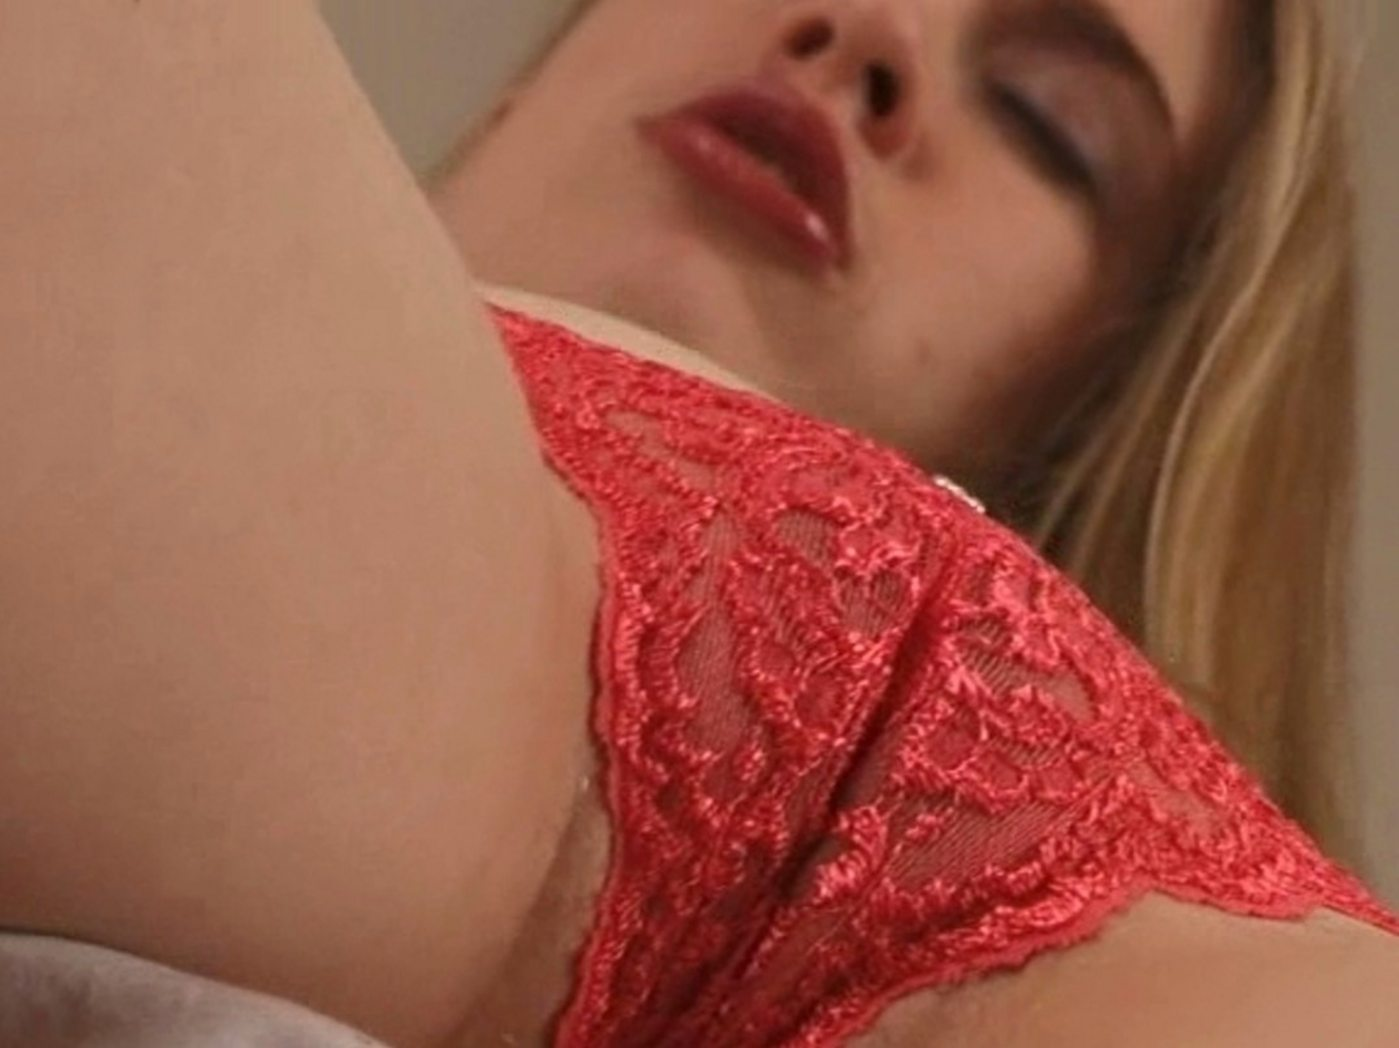 Lick pussy red panties excited